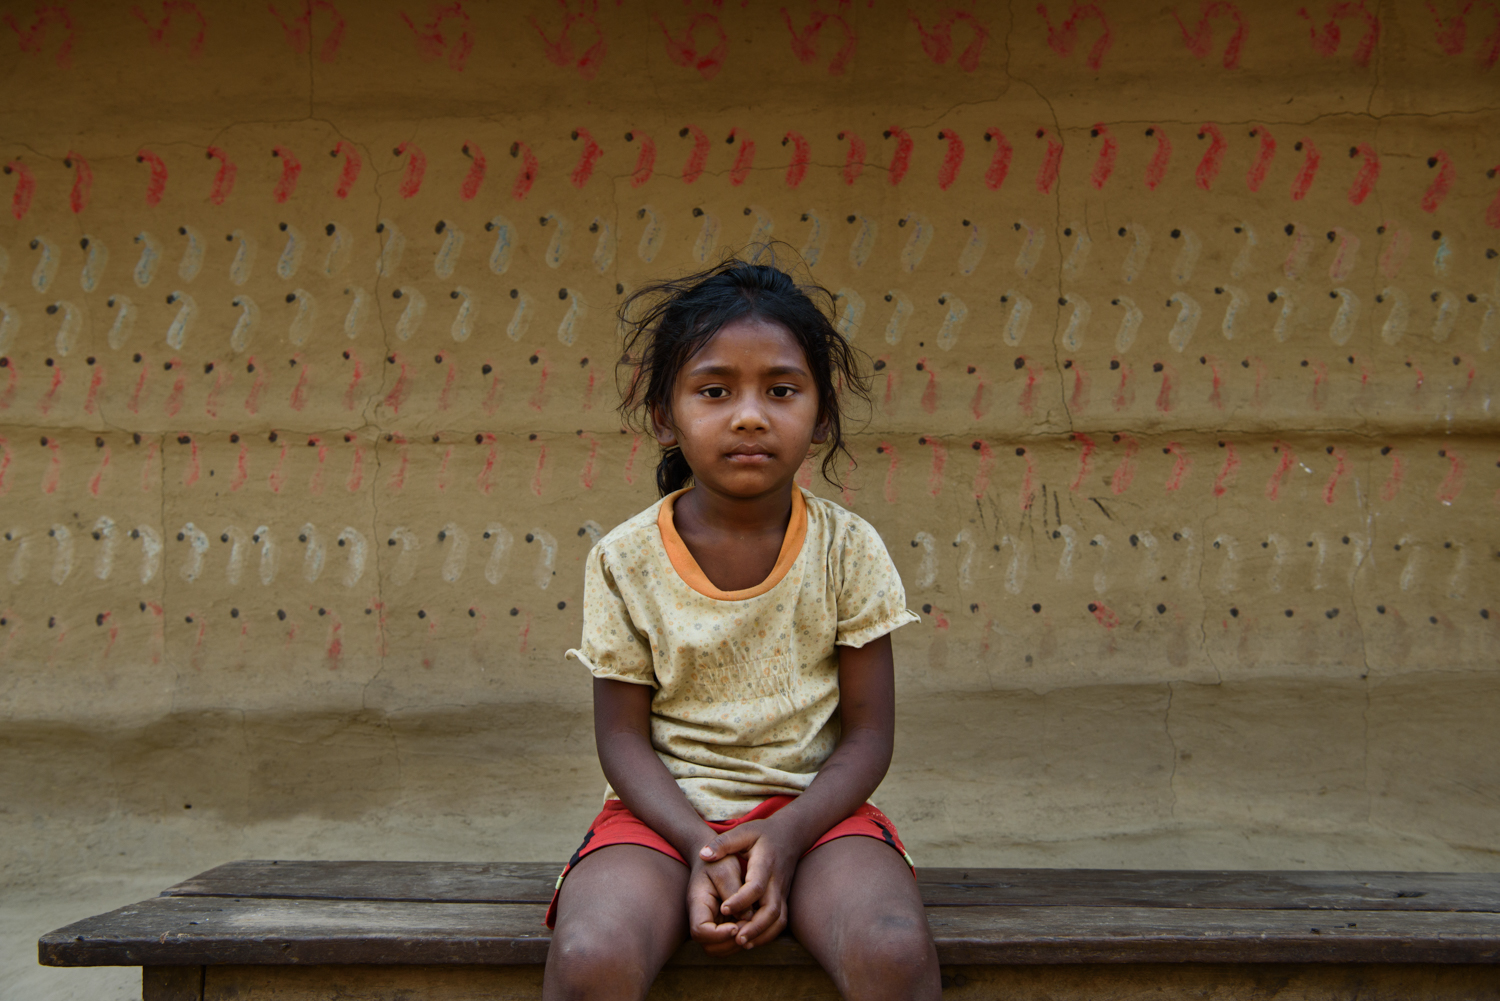 Pratigya Majhi (5) studies in nursery grade and is the only child in the Malpur villagecommunity attending a private school. Pratigya's education is supported by a foreigner through a scholarship.